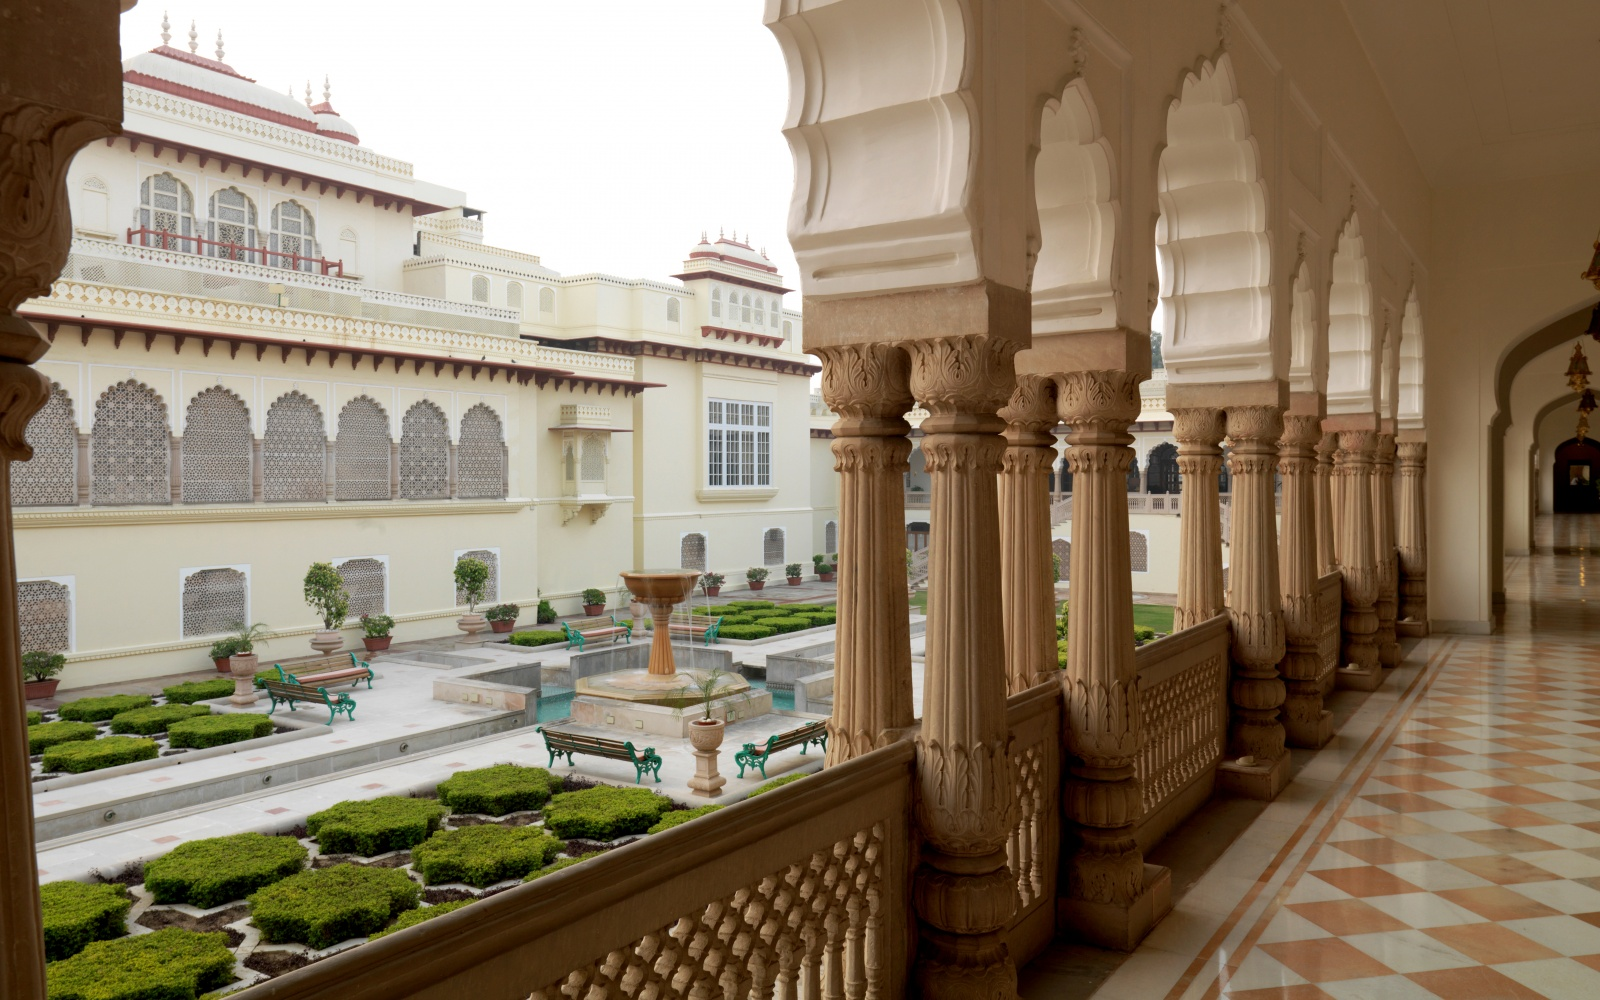 No. 32 Rambagh Palace, Jaipur, India